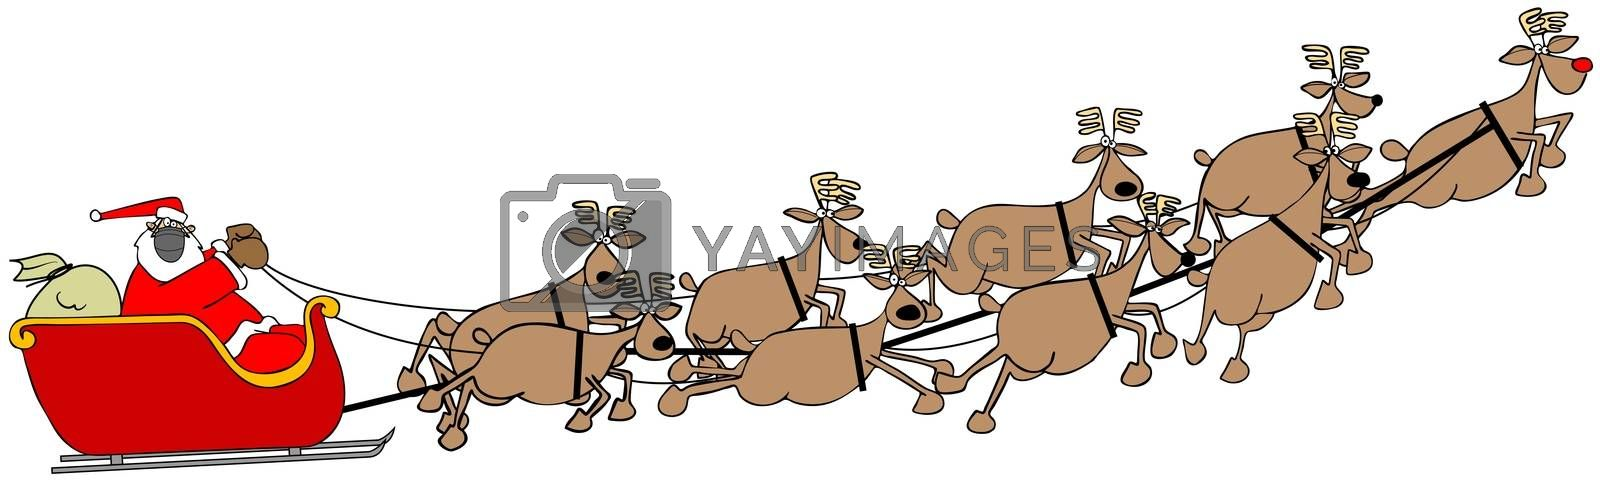 Illustration of Santa Claus in his sleigh full of gifts being pulled by nine reindeer, all wearing face masks.